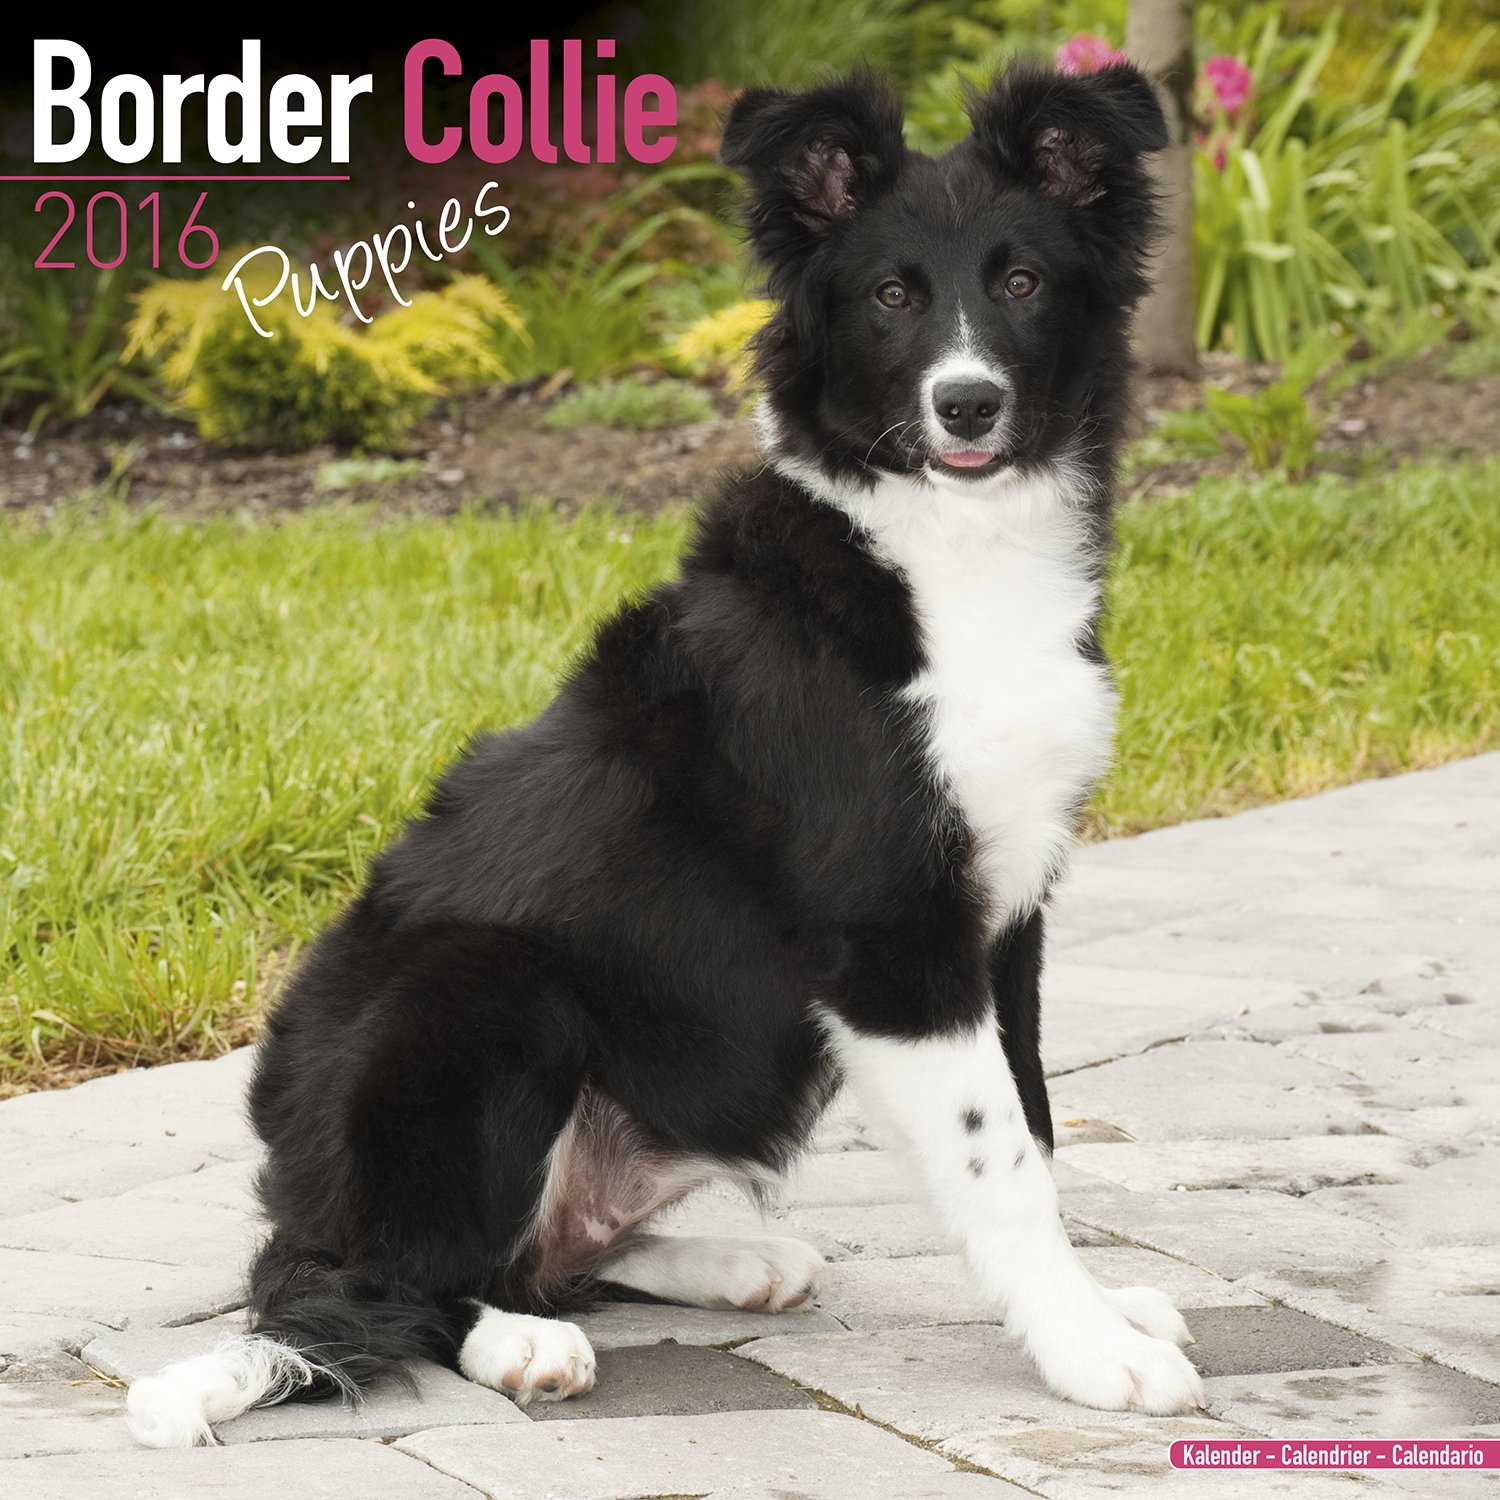 Border Collie Puppies Calendar Only Dog Breed Border Collie